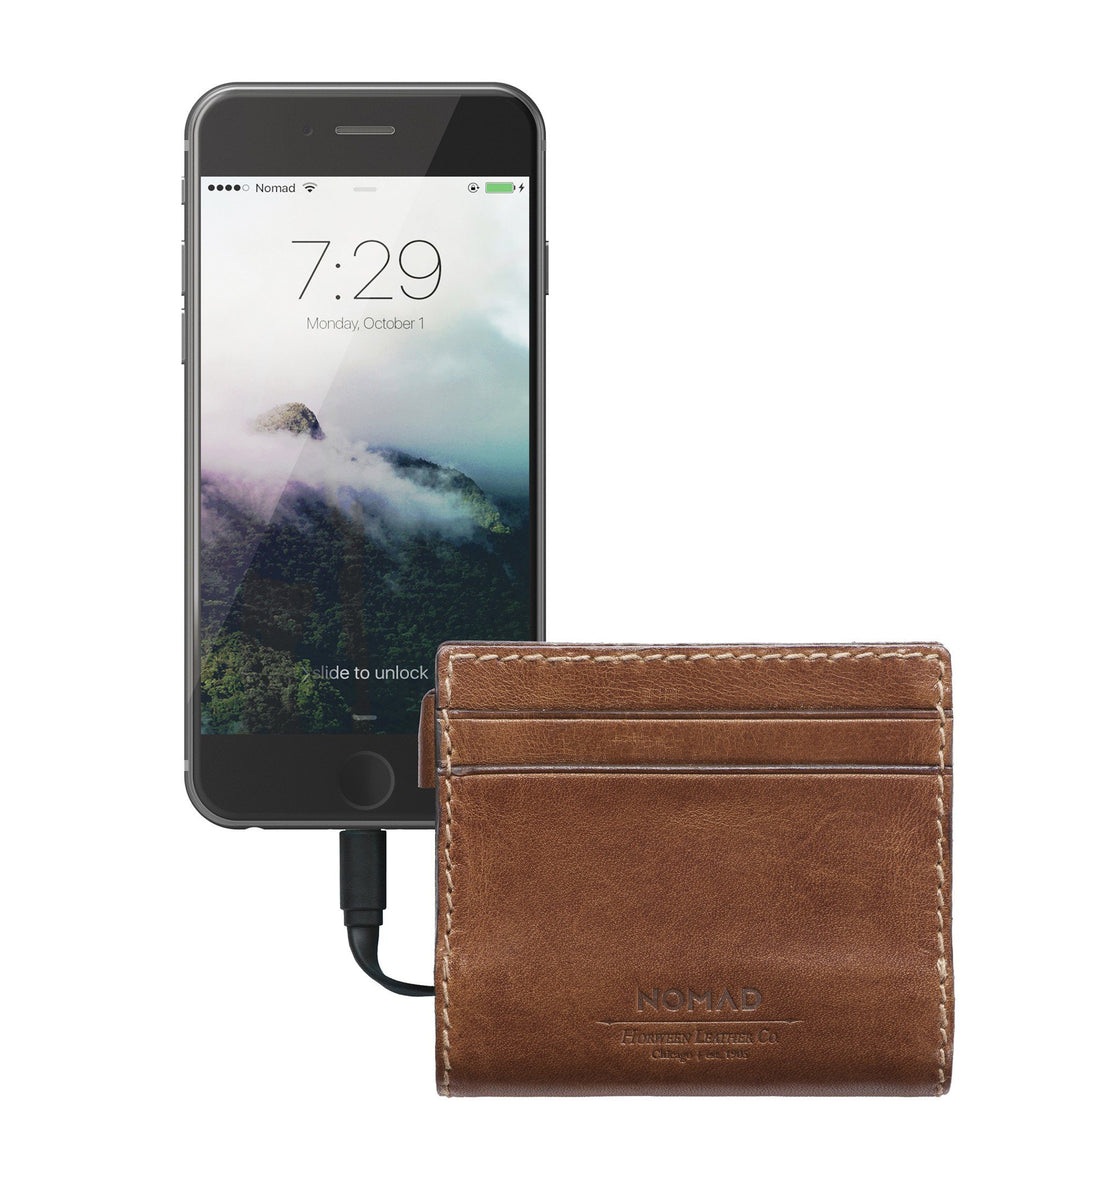 Nomad Battery Slim Wallet - Rustic Brown - Carry Essentials - Iron and Resin